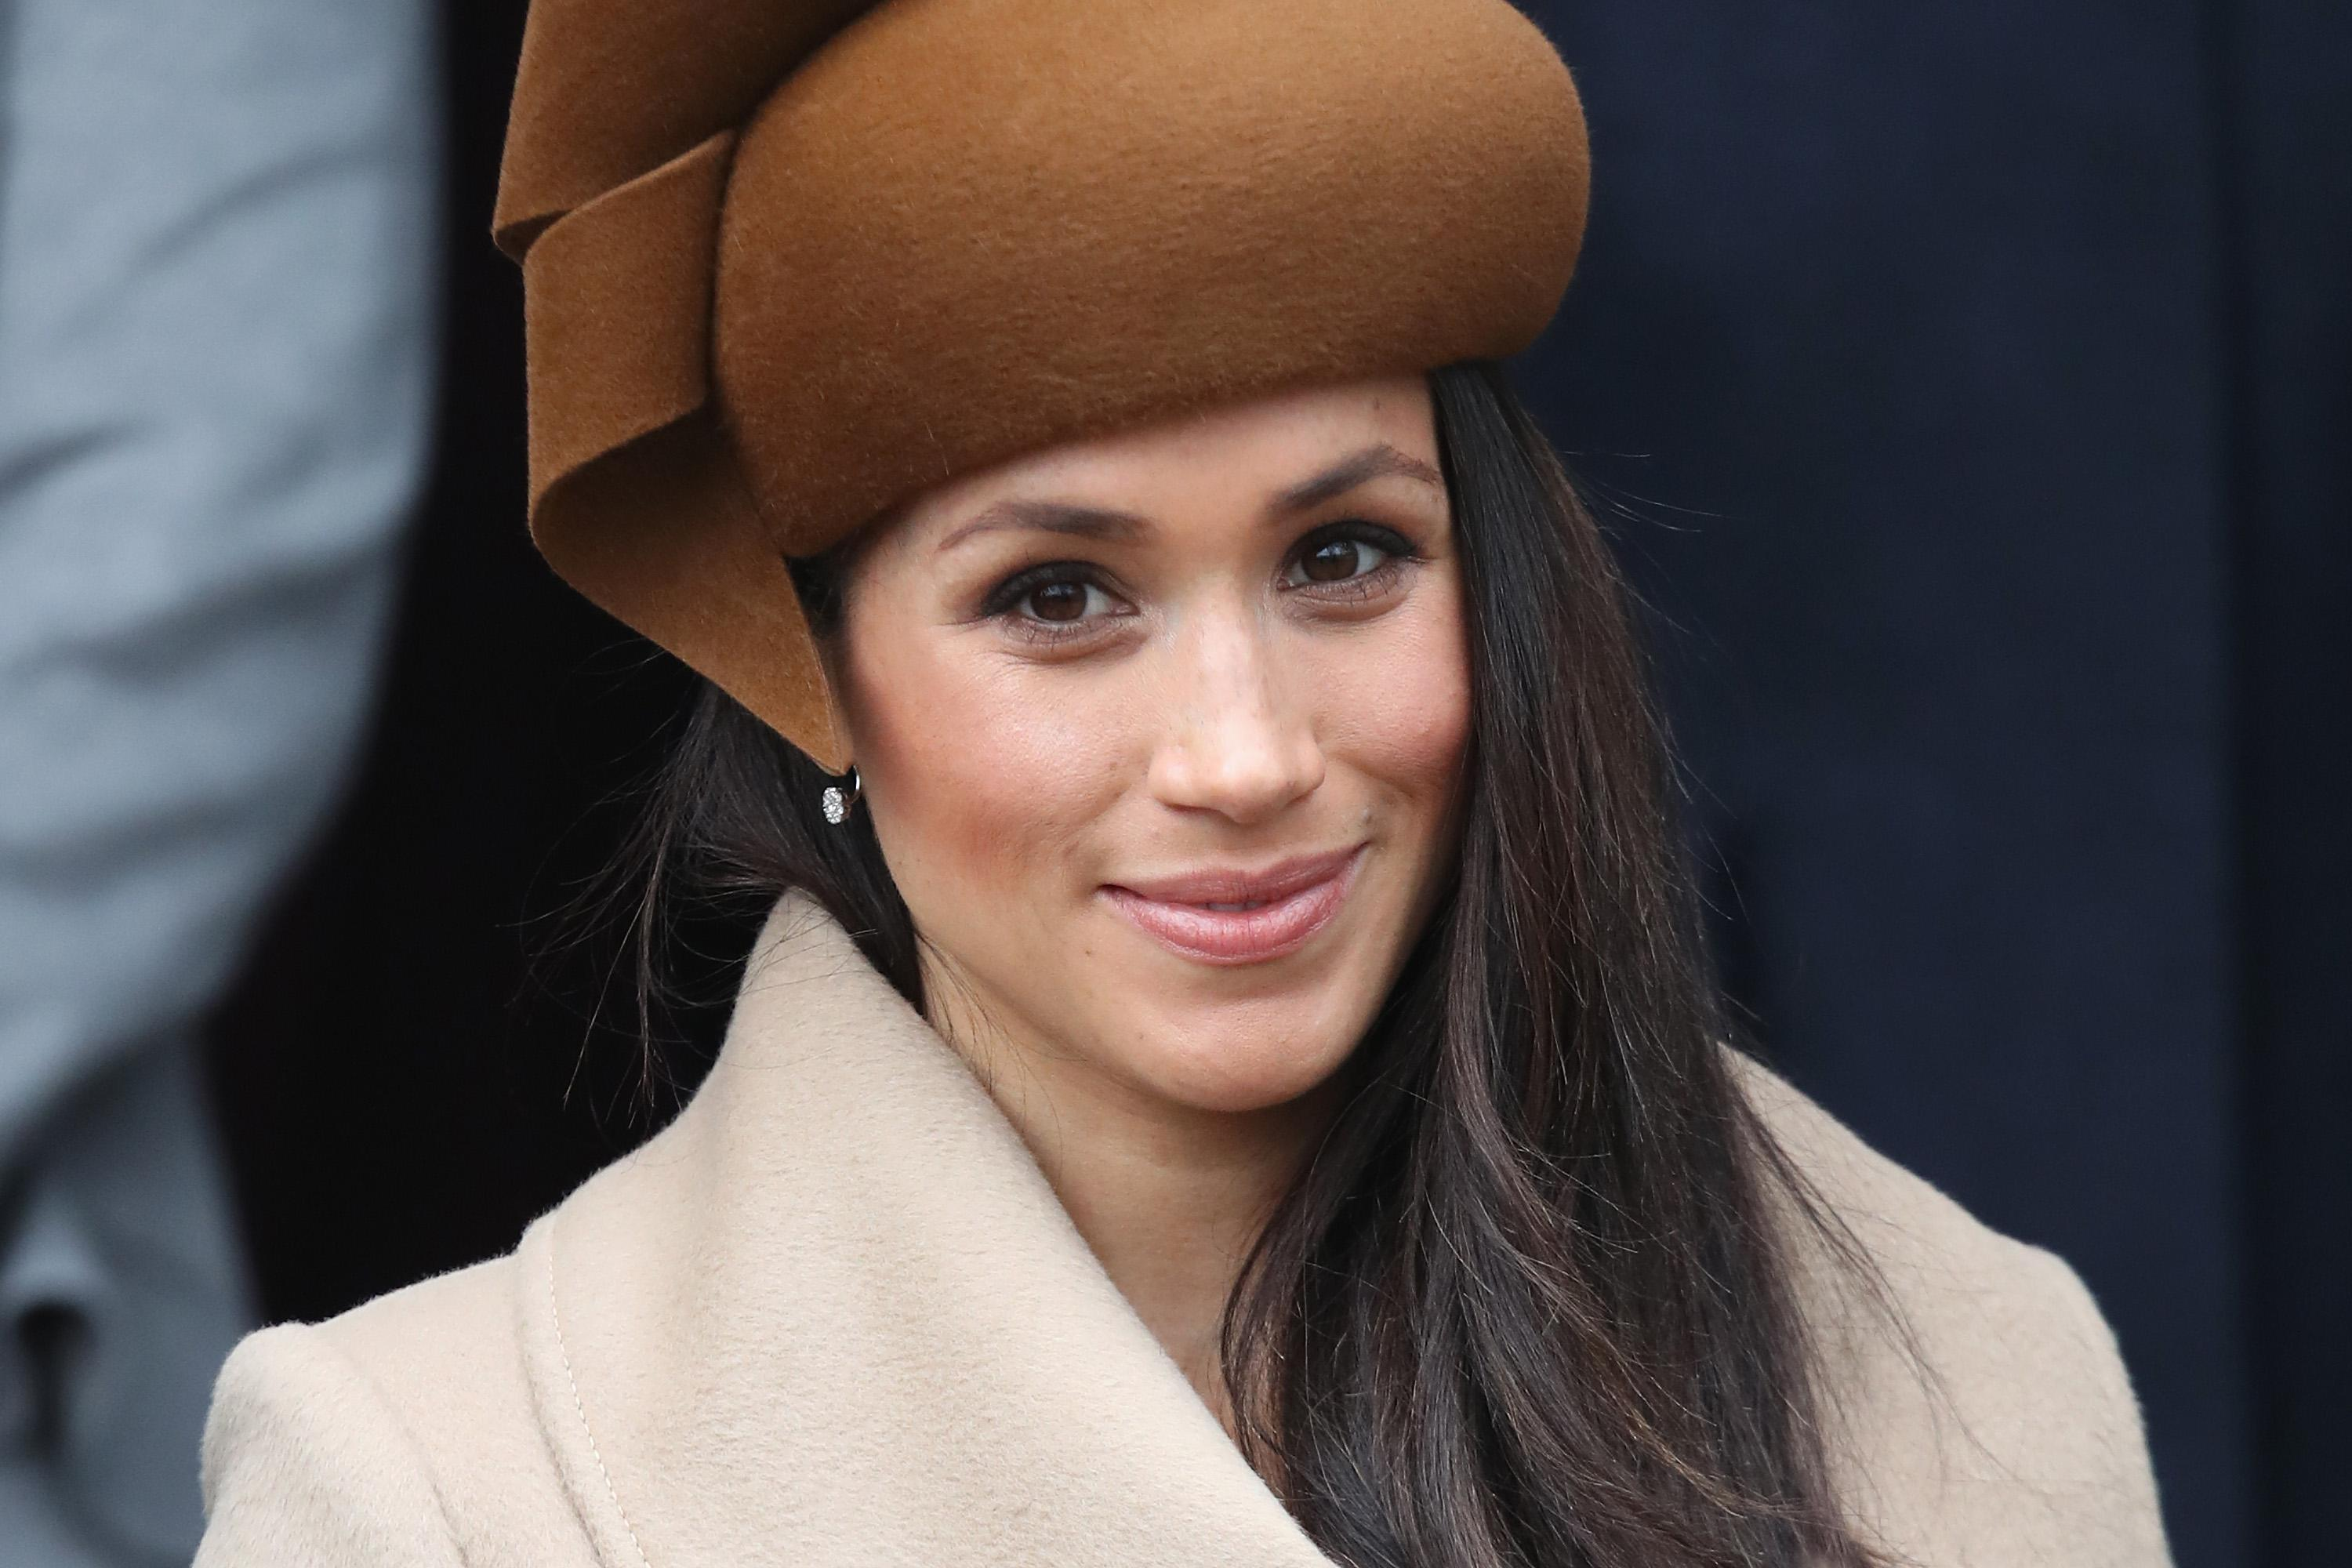 Princesses Can't Act, Or Meghan Markle Would Be a Bond Girl